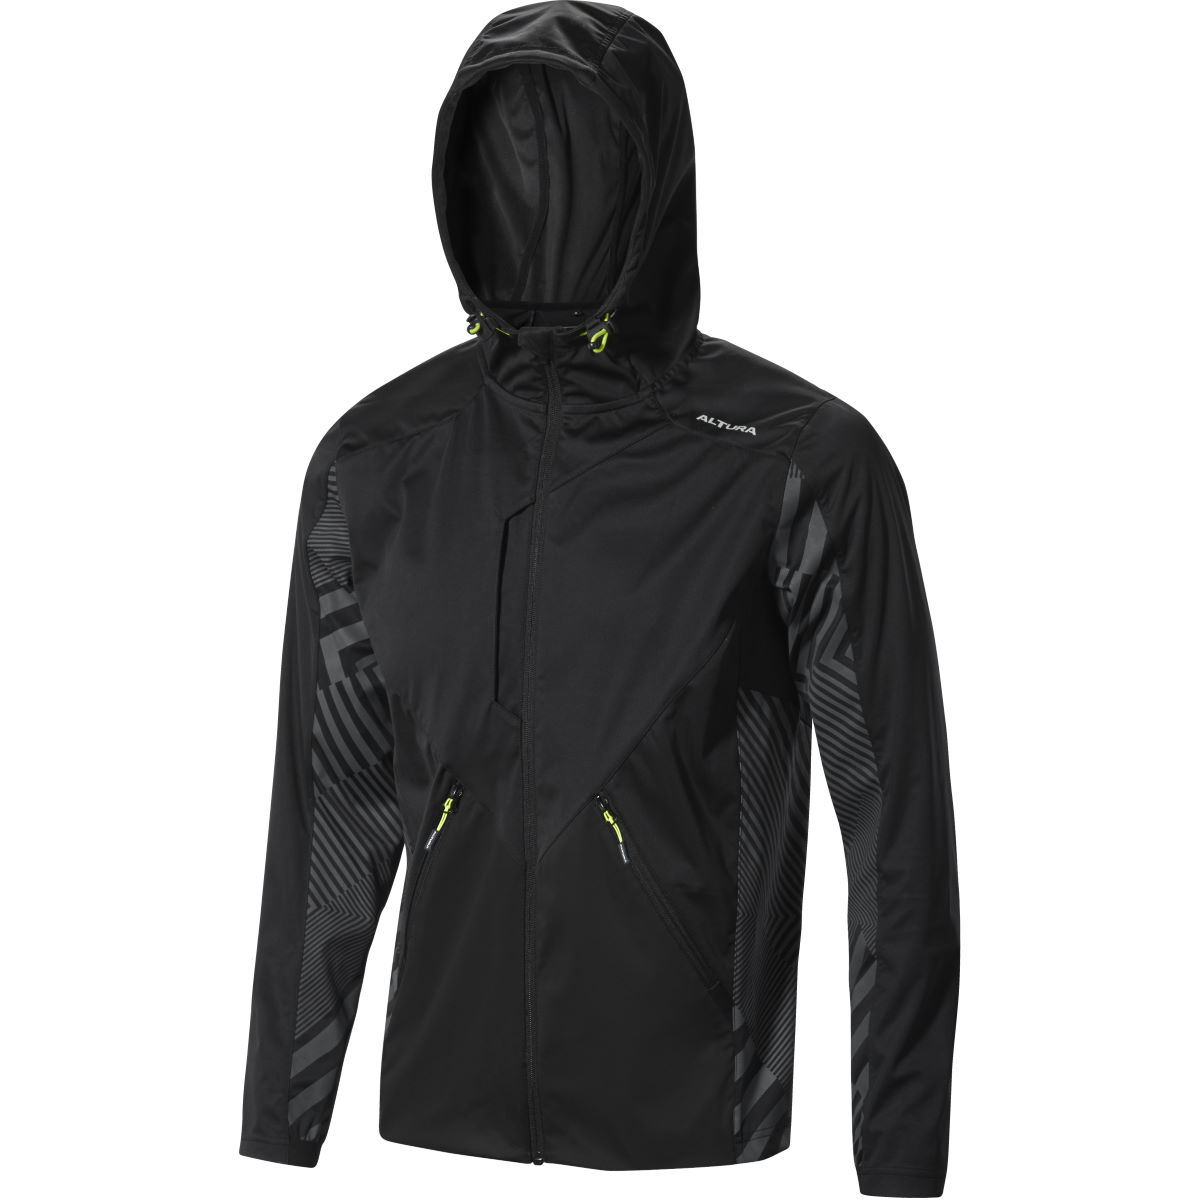 Veste Altura Three 60 (coupe-vent) - XXL Noir/Gris Coupe-vents vélo